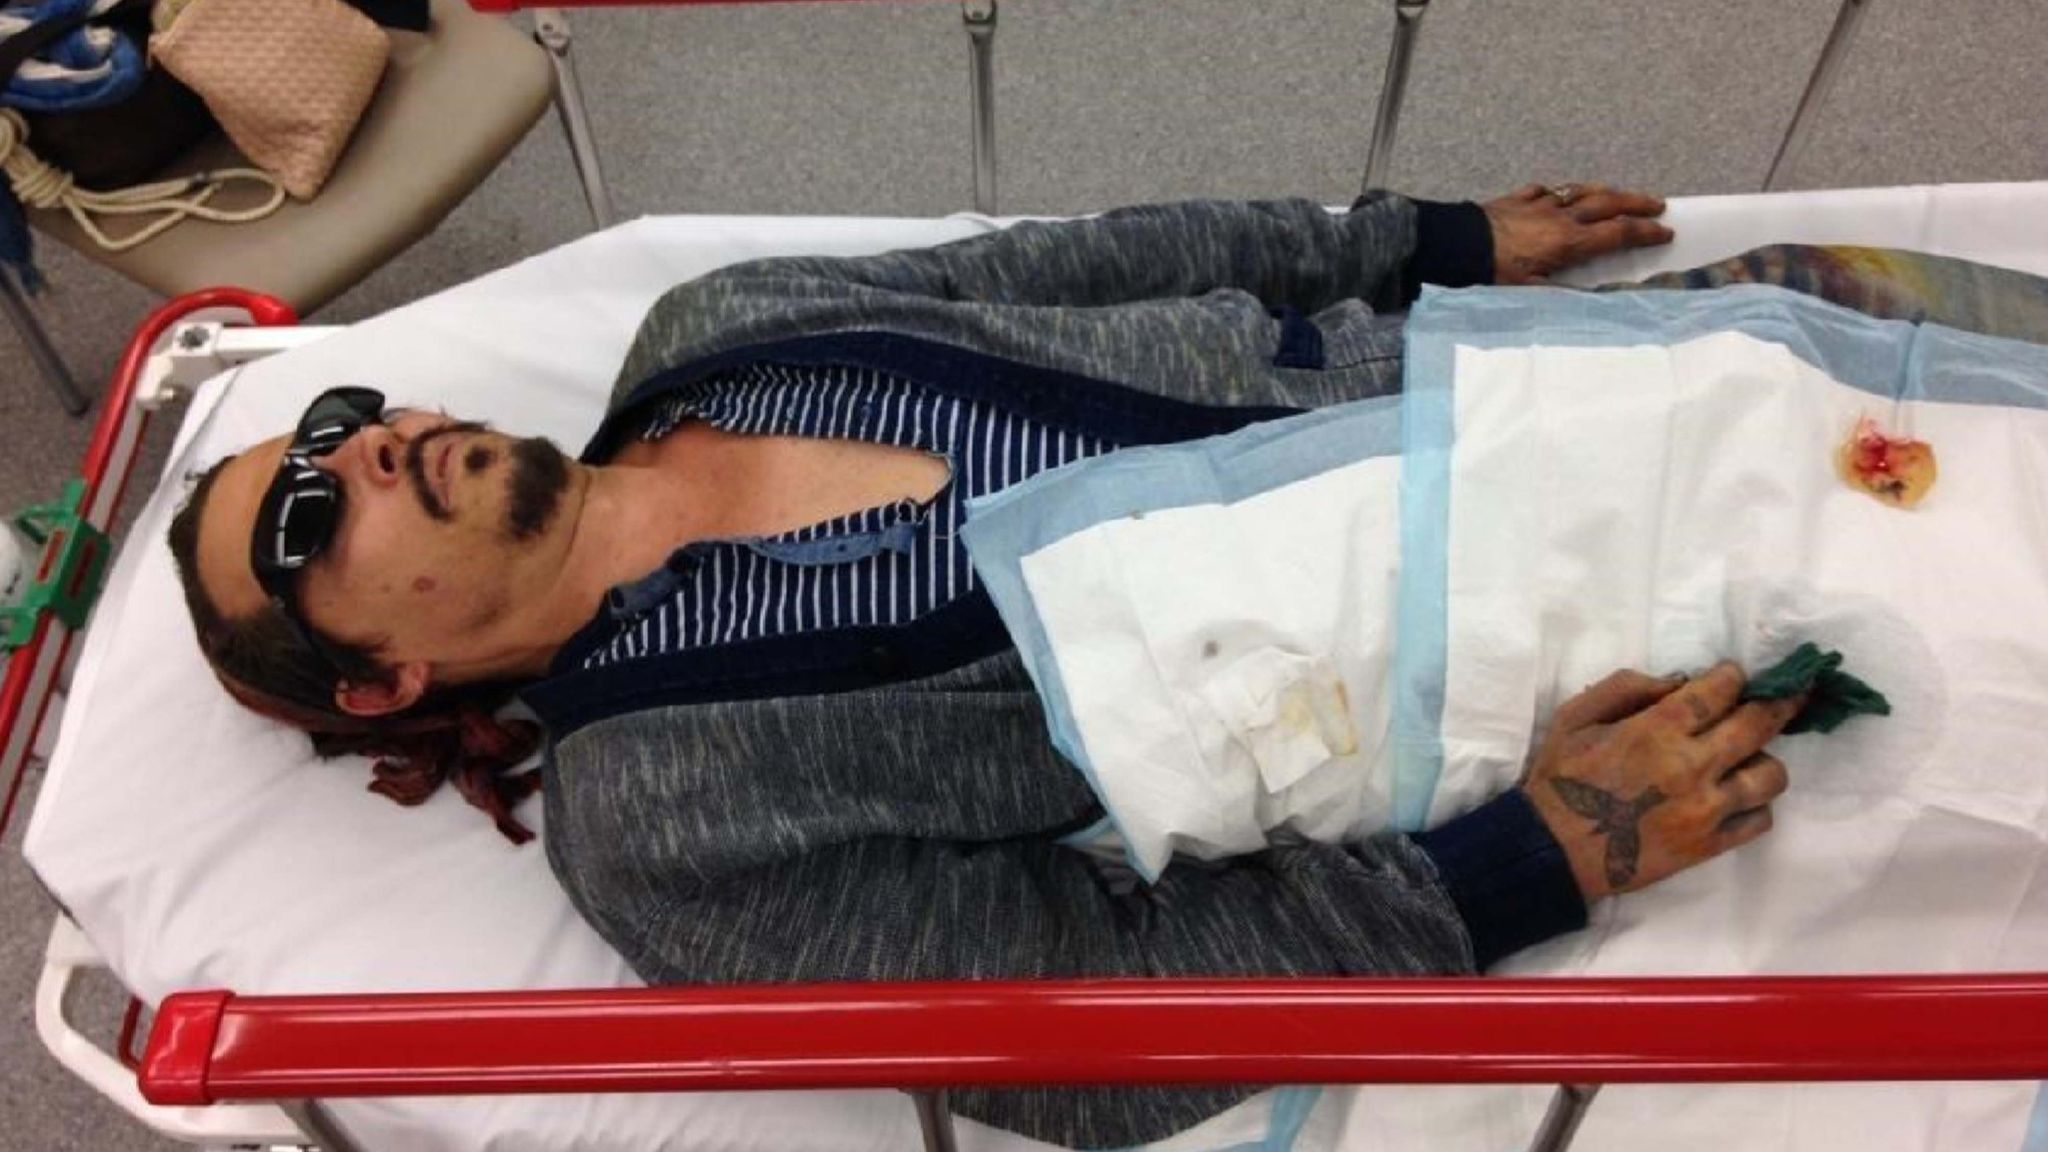 A picture from Johnny Depp's lawyers show him in hospital after Amber Heard allegedly severed his finger with a vodka bottle.